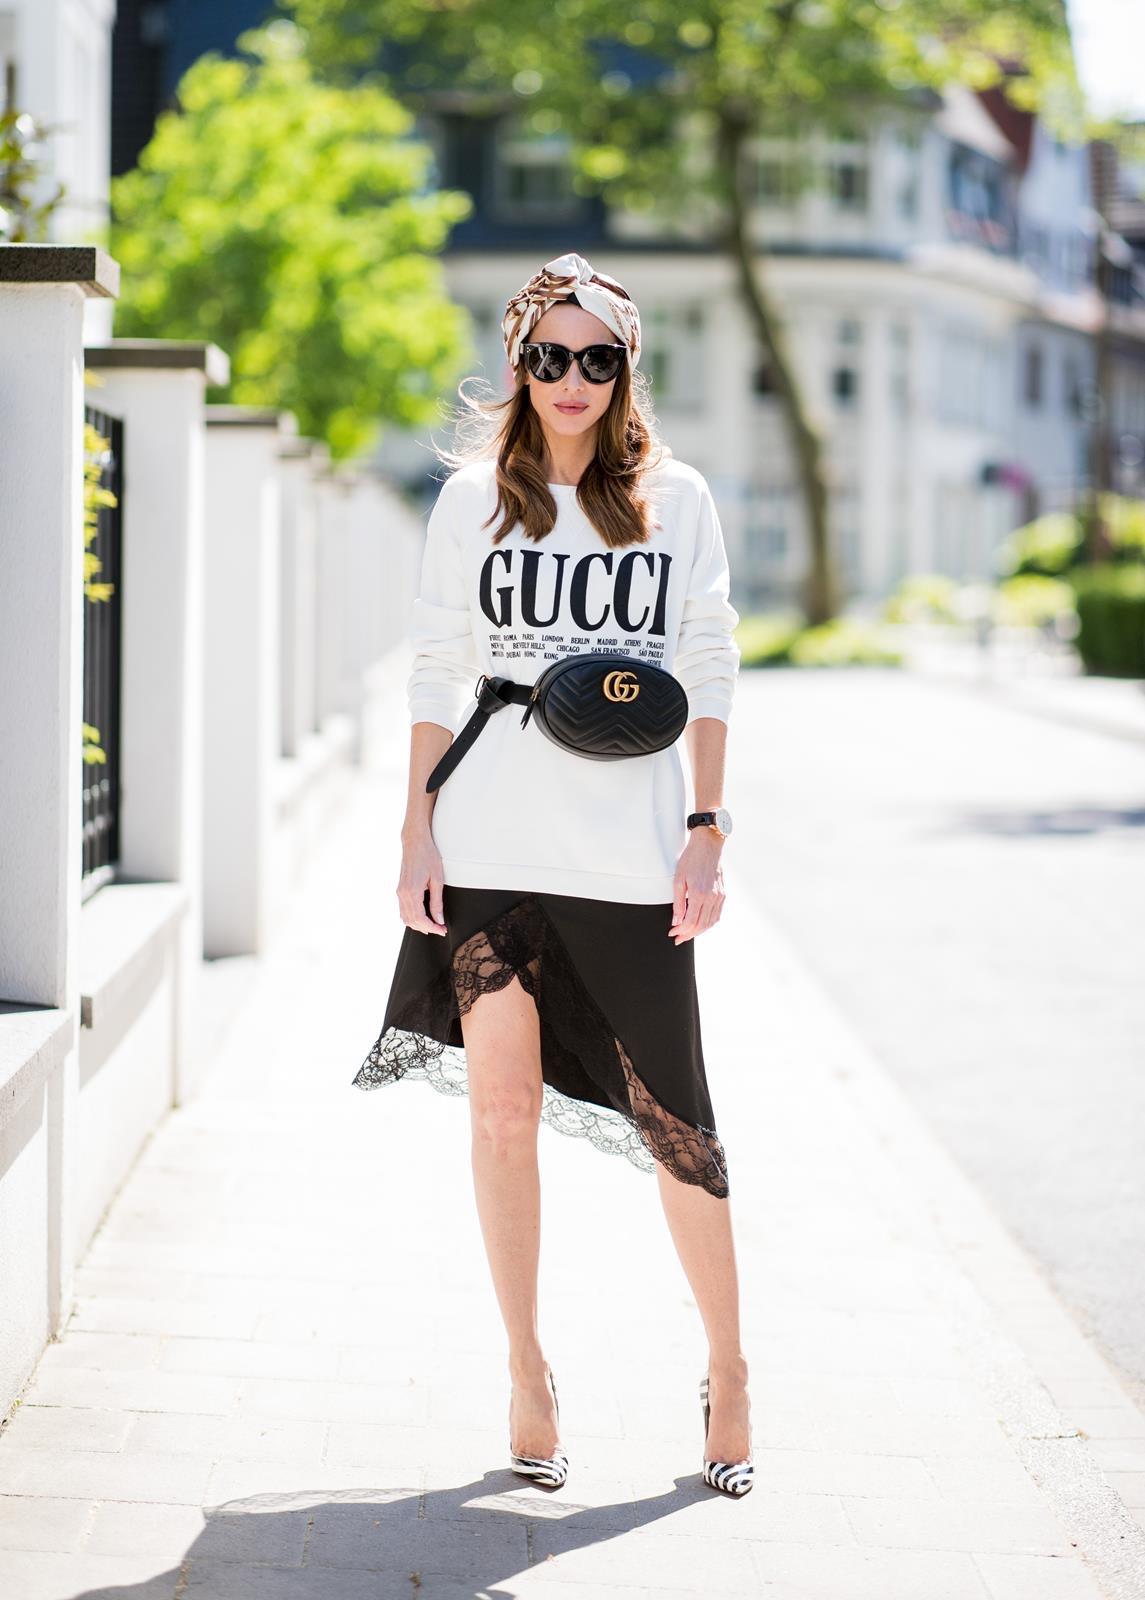 91db5e5fa3d7 GUCCI BELT BAG | GUCCI STYLE - Blog - Alexandra Lapp